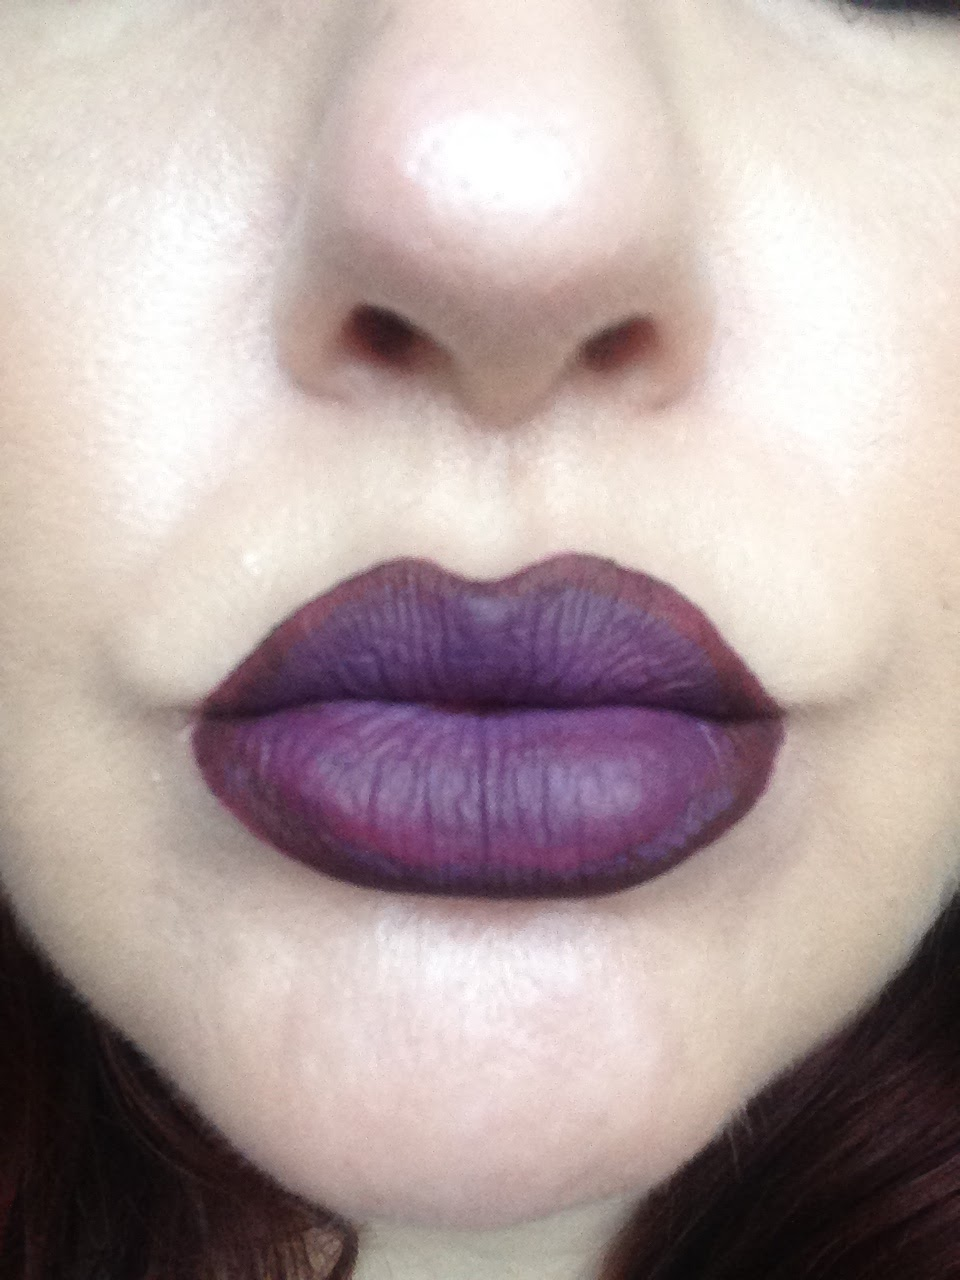 Review Kat Von D Everlasting Obsession Liquid Lipstick Collectors Moodmatcher Matte Just Blush Damned Mixed With Ayesha